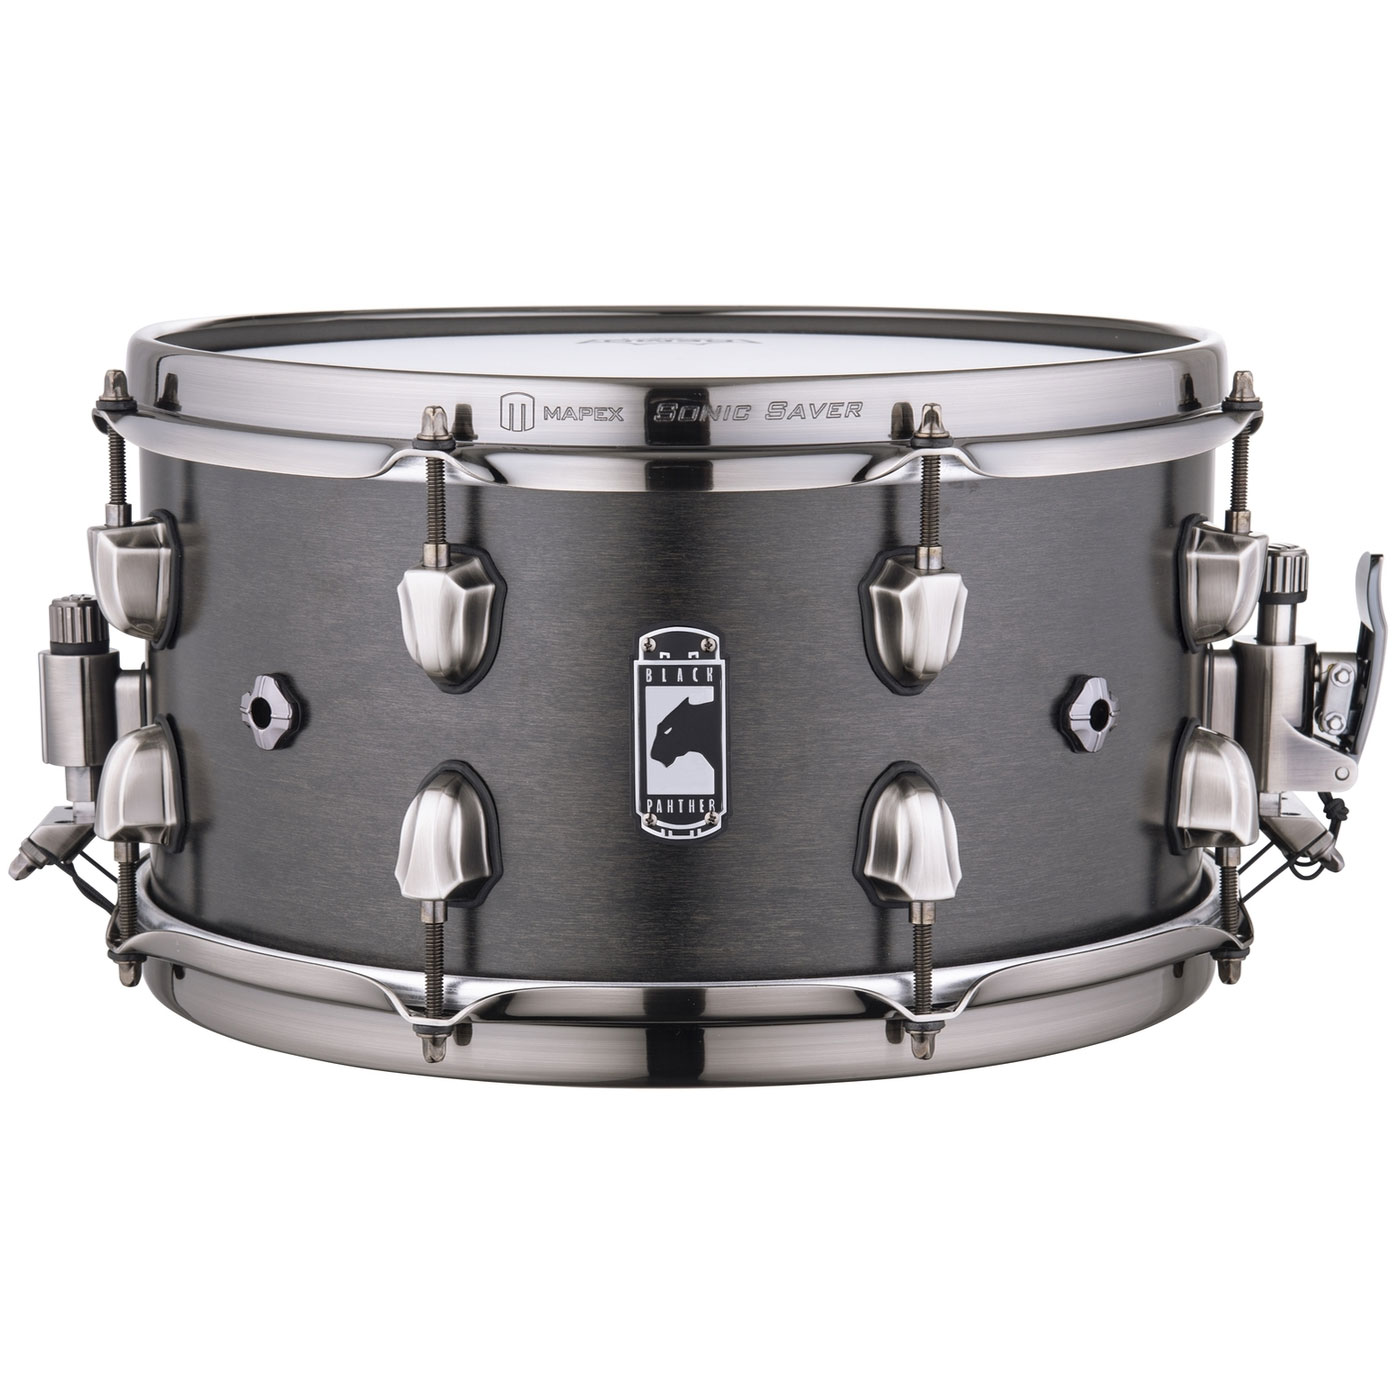 """Mapex 13"""" x 7"""" Black Panther """"Hydra"""" 6-Ply Maple Snare Drum"""